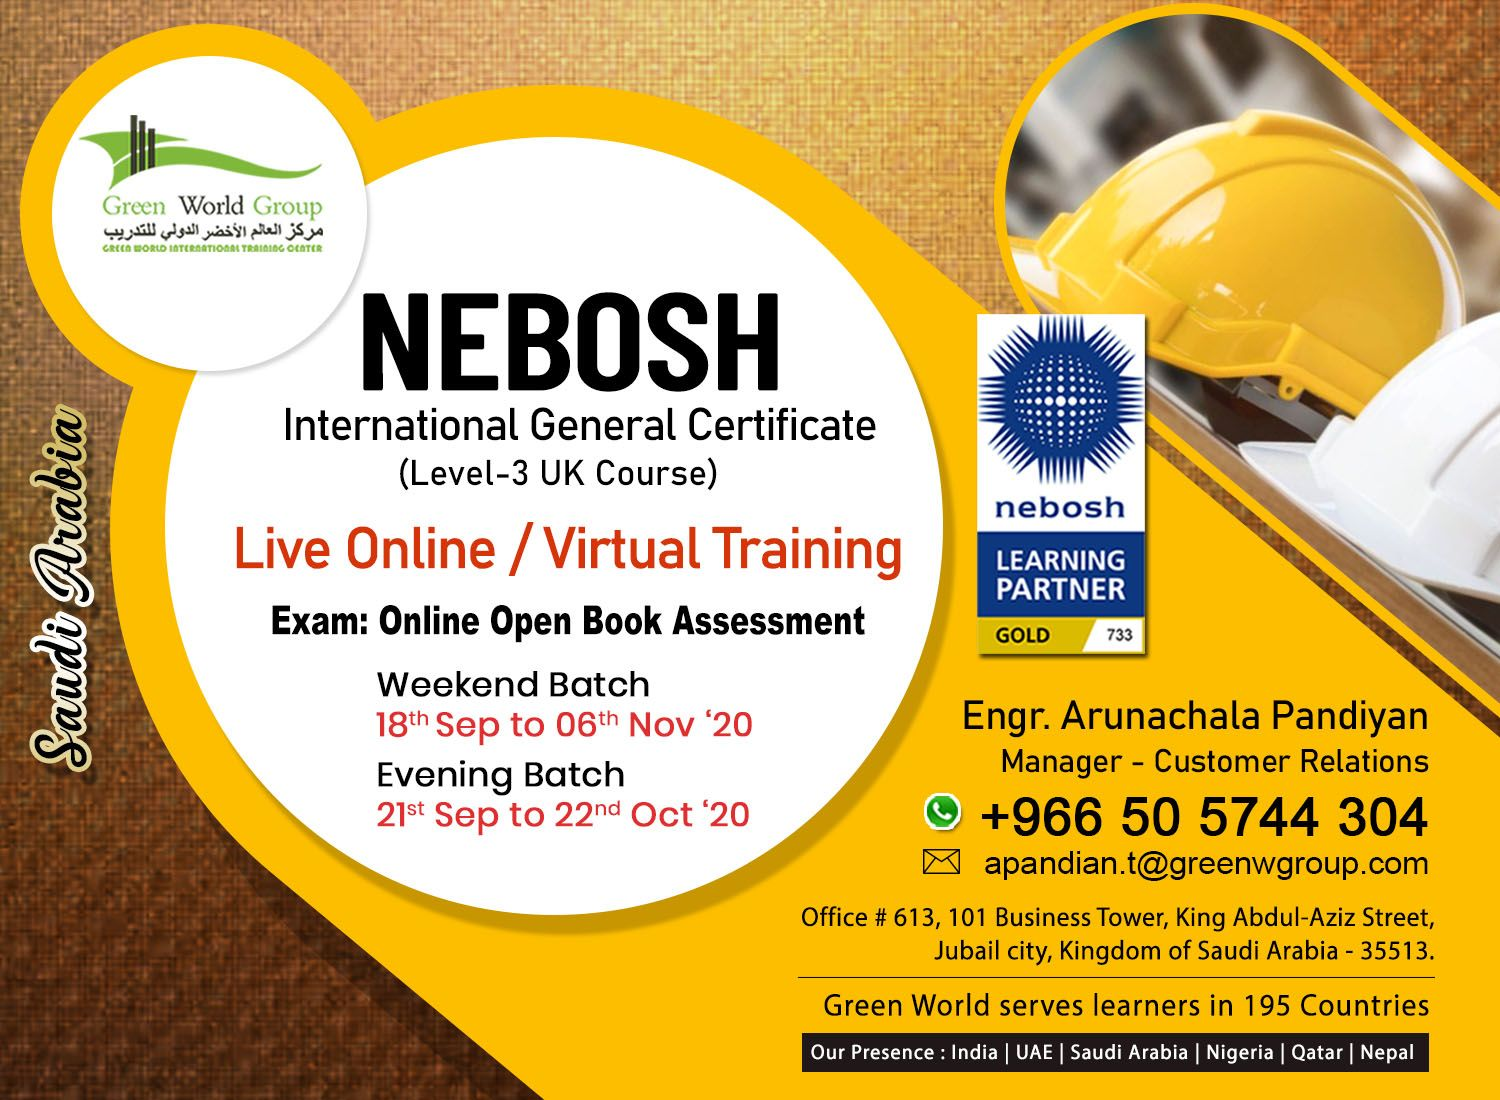 NEBOSH in Saudi Arabia NEBOSH Accredited Centre in Saudi